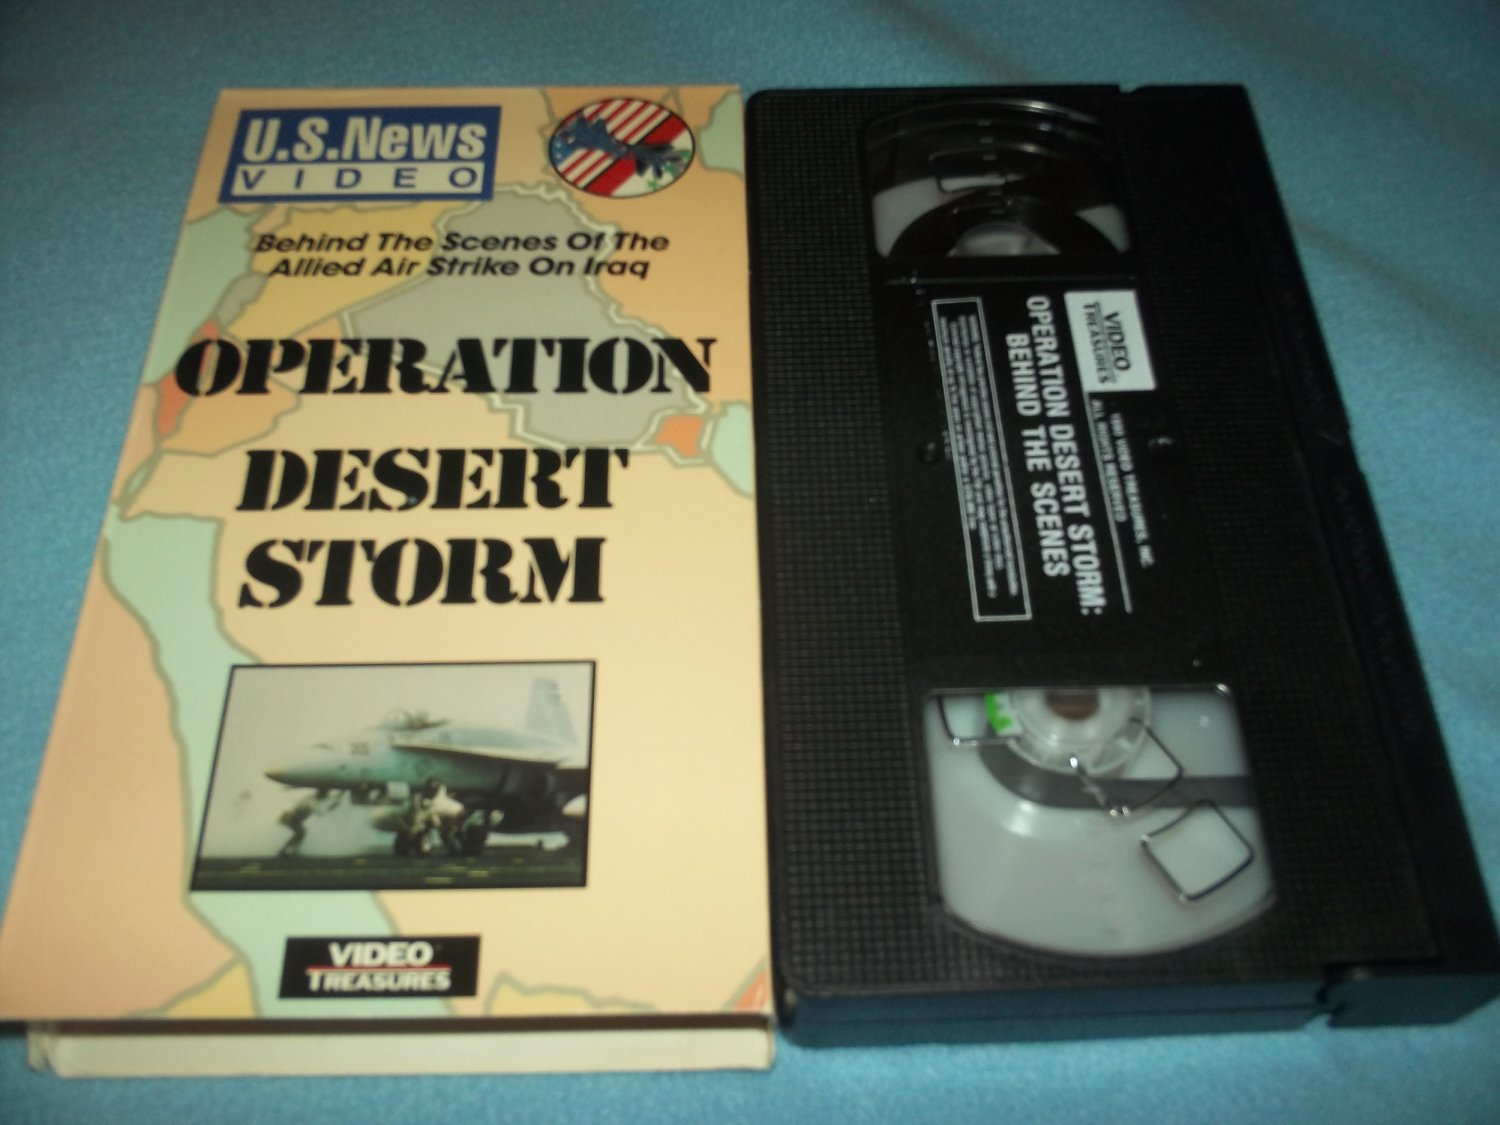 OPERATION DESERT STORM~VHS~U.S. NEWS VIDEO~1991 BEHIND THE SCENES-ALLIED AIR STRIKE